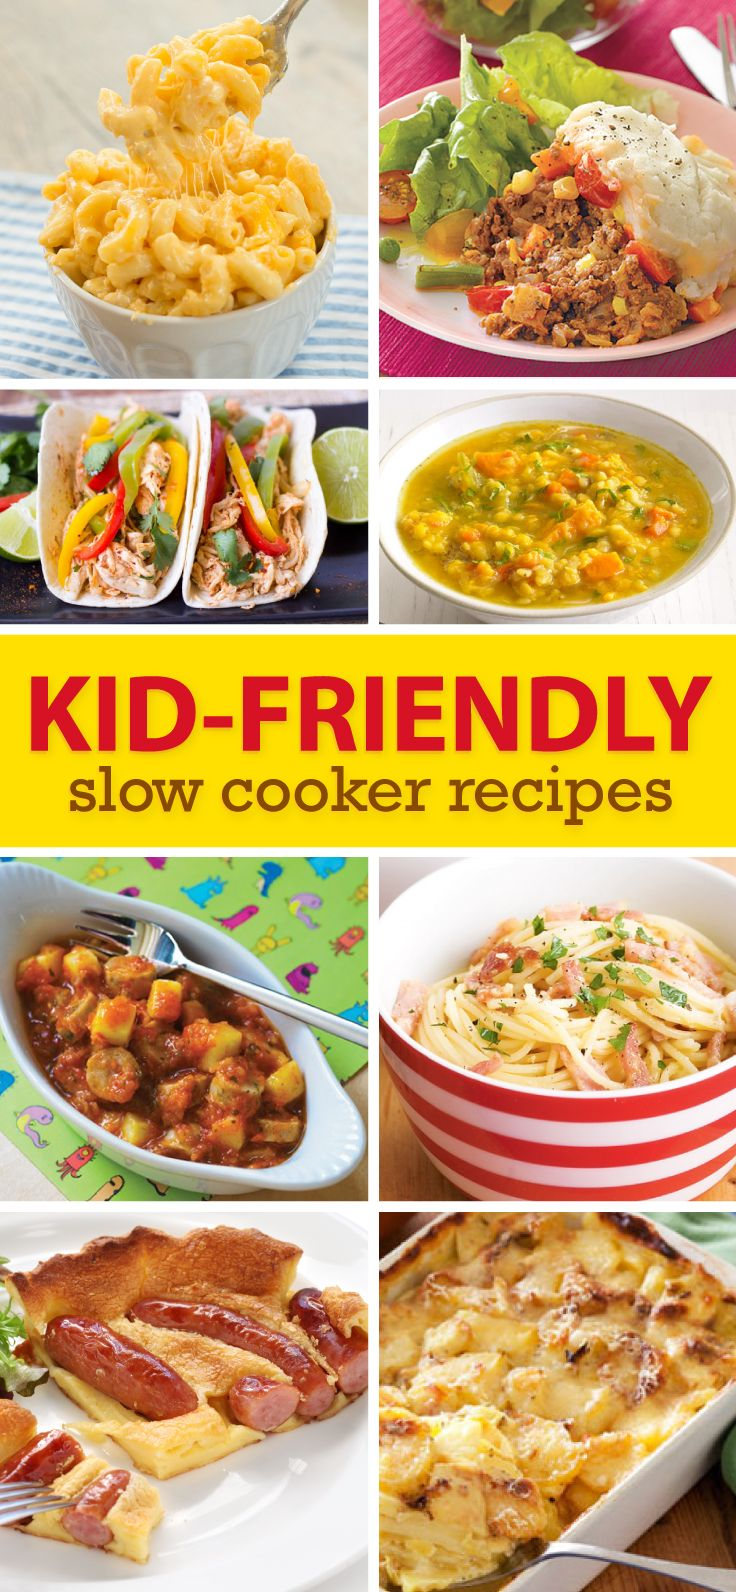 slow cooker meals for kids | cooking for kids | pinterest | slow